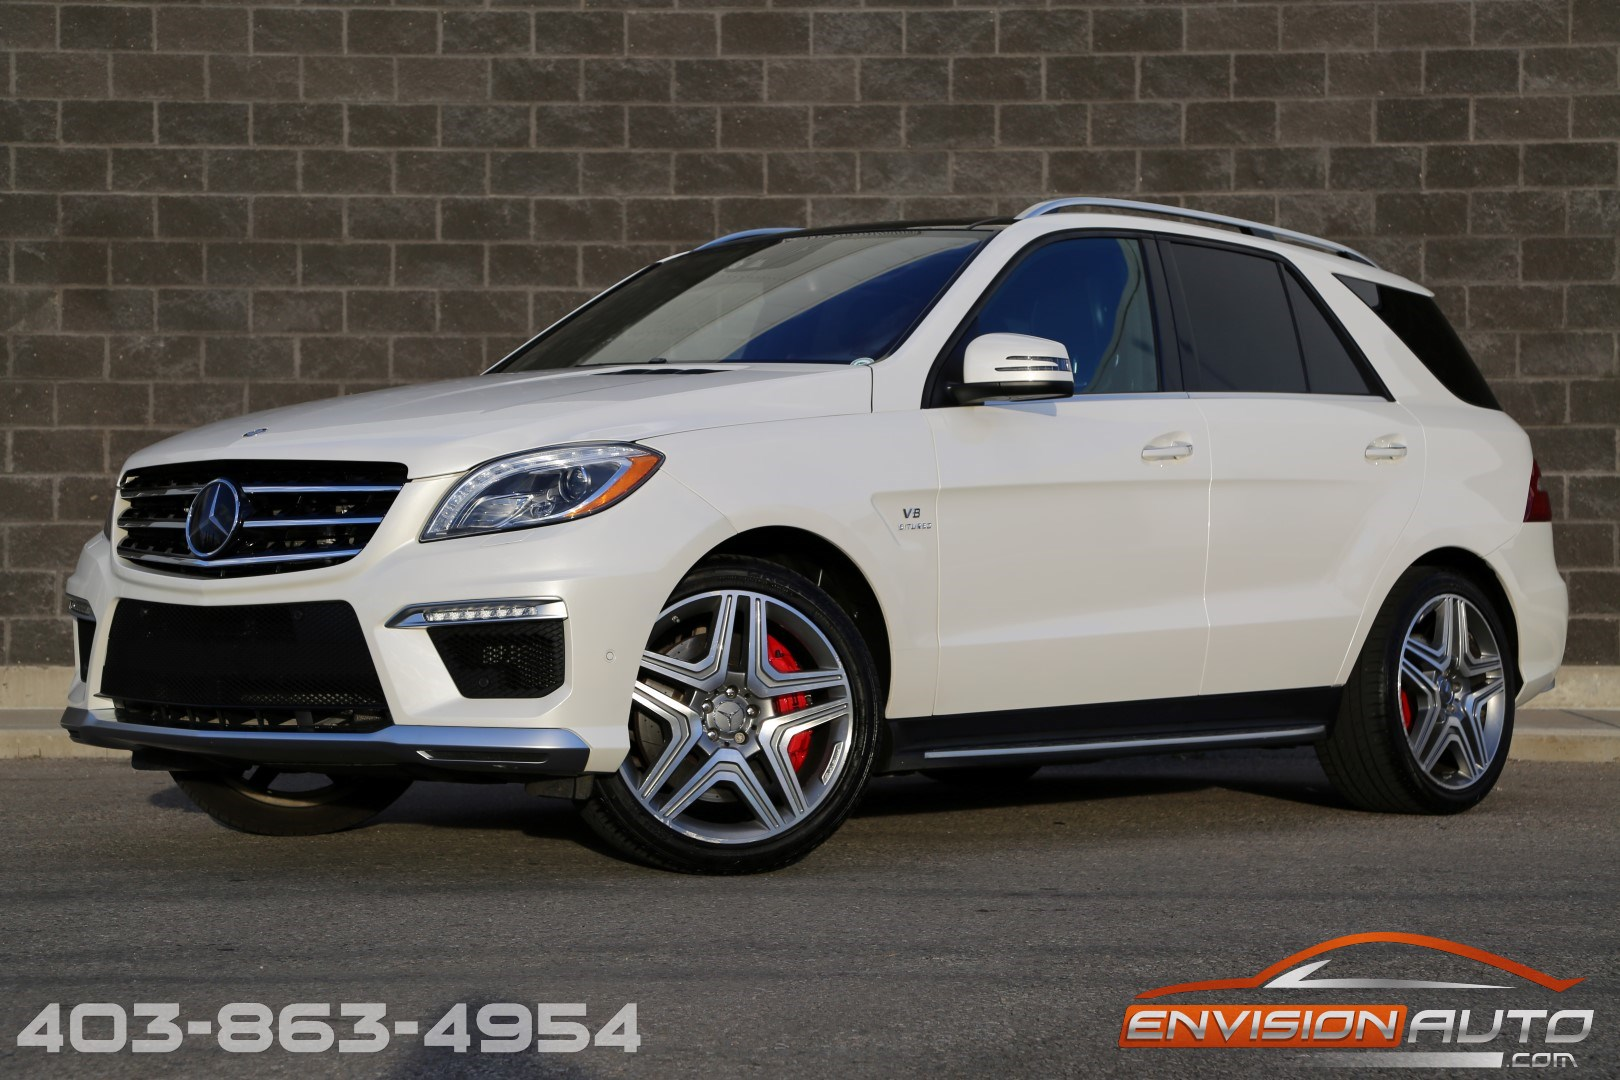 2013 mercedes benz ml63 amg performance designo envision auto. Black Bedroom Furniture Sets. Home Design Ideas